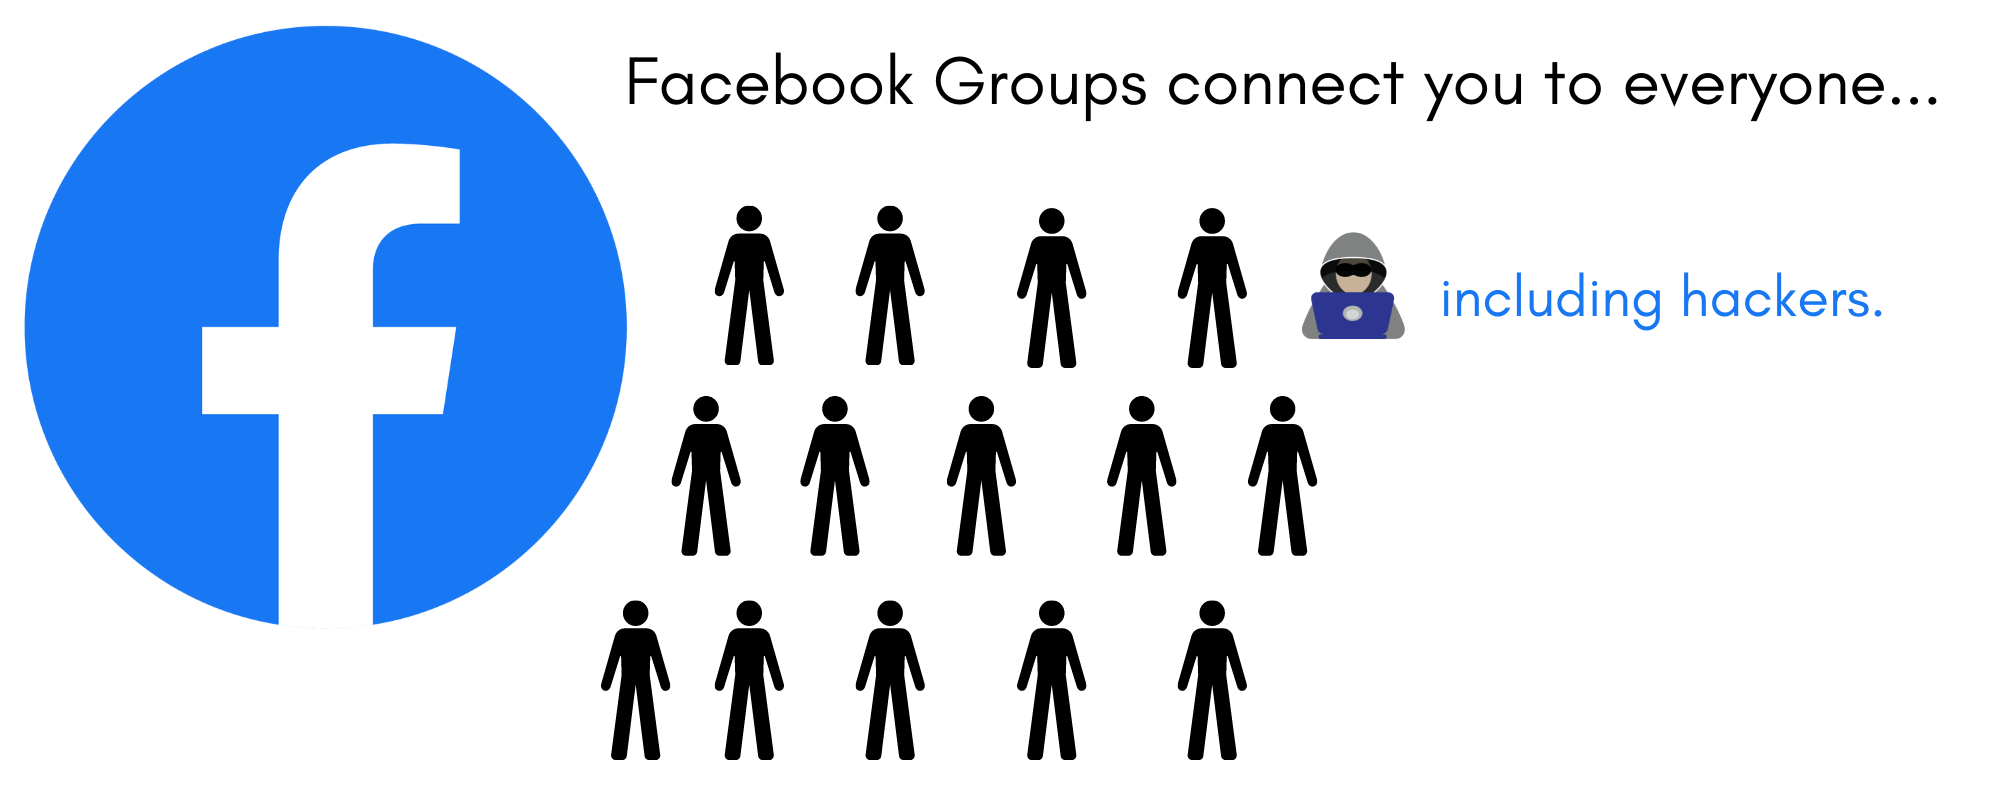 """An image of people next to the facebook symbol with the text """"Facebook Groups connect you to everyone... including hackers."""""""